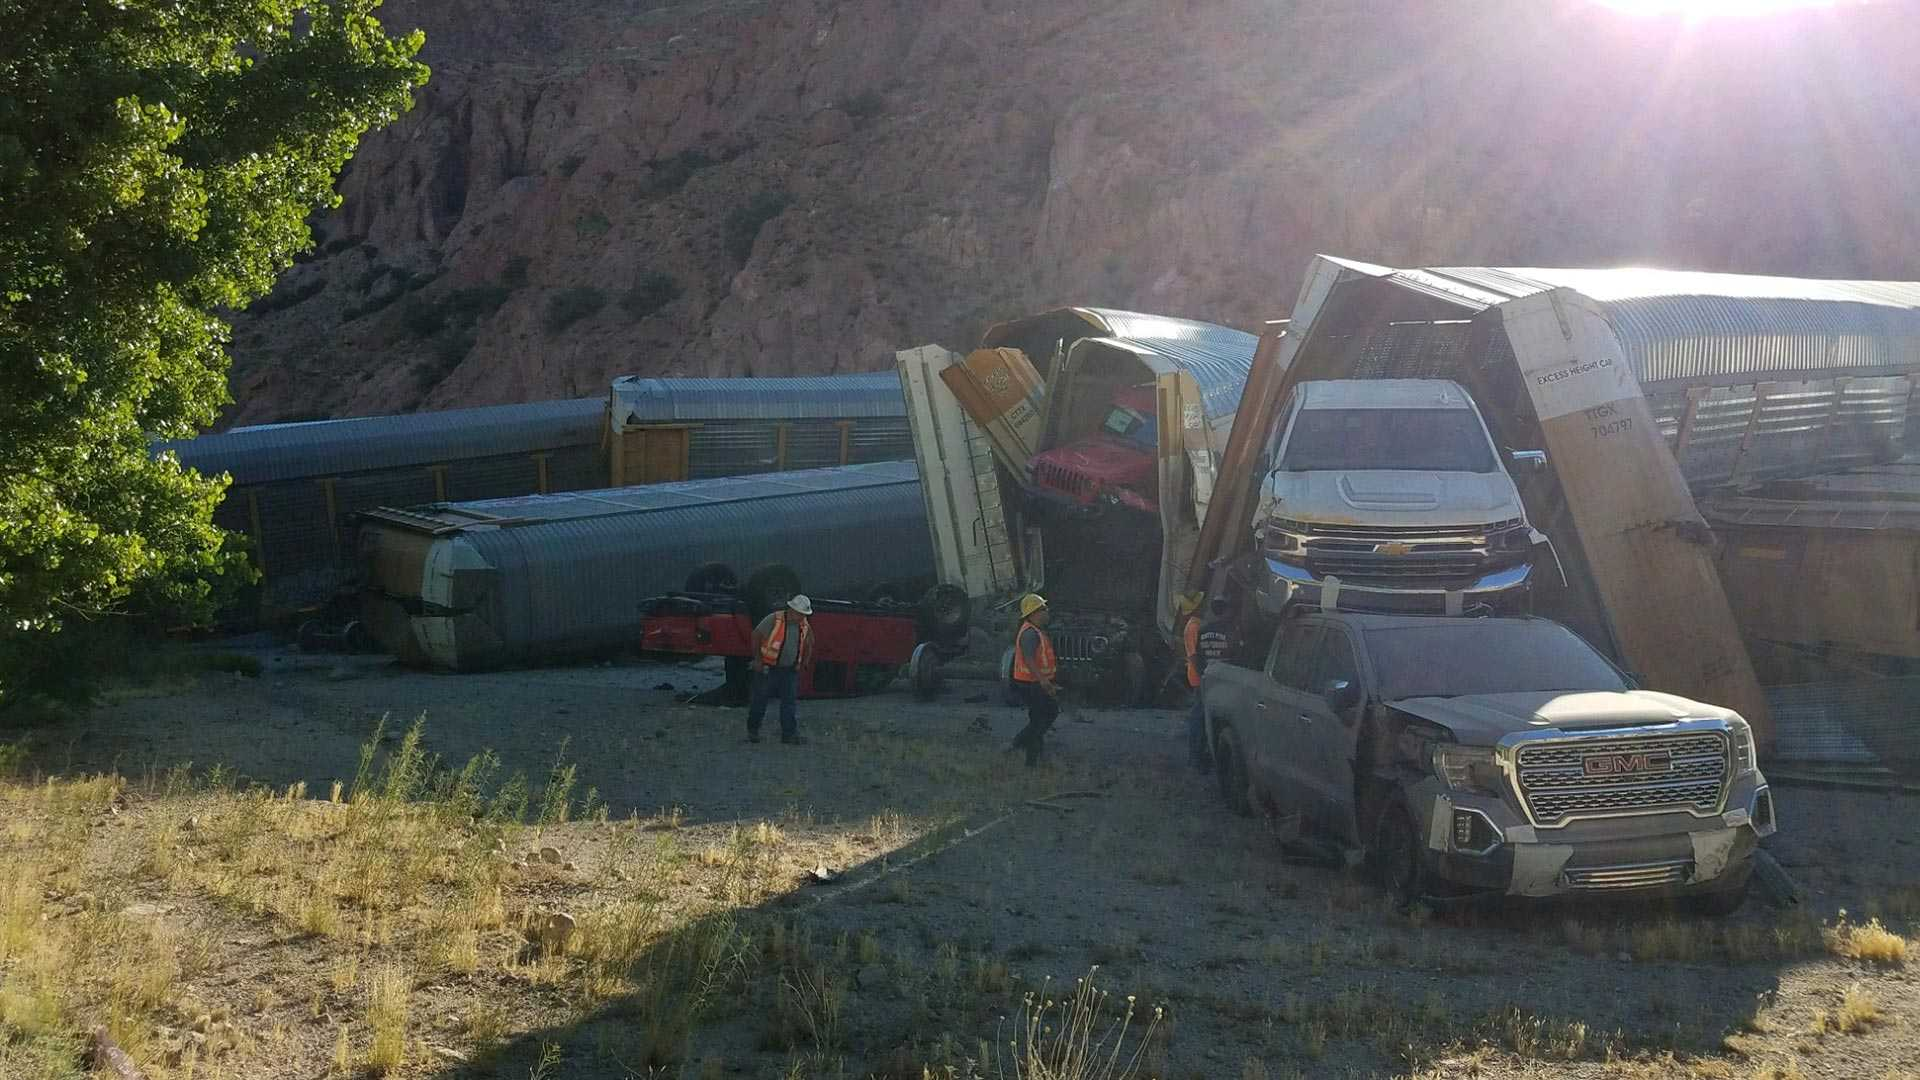 Train with Luxury Jeeps in the US Derailed - RayHaber